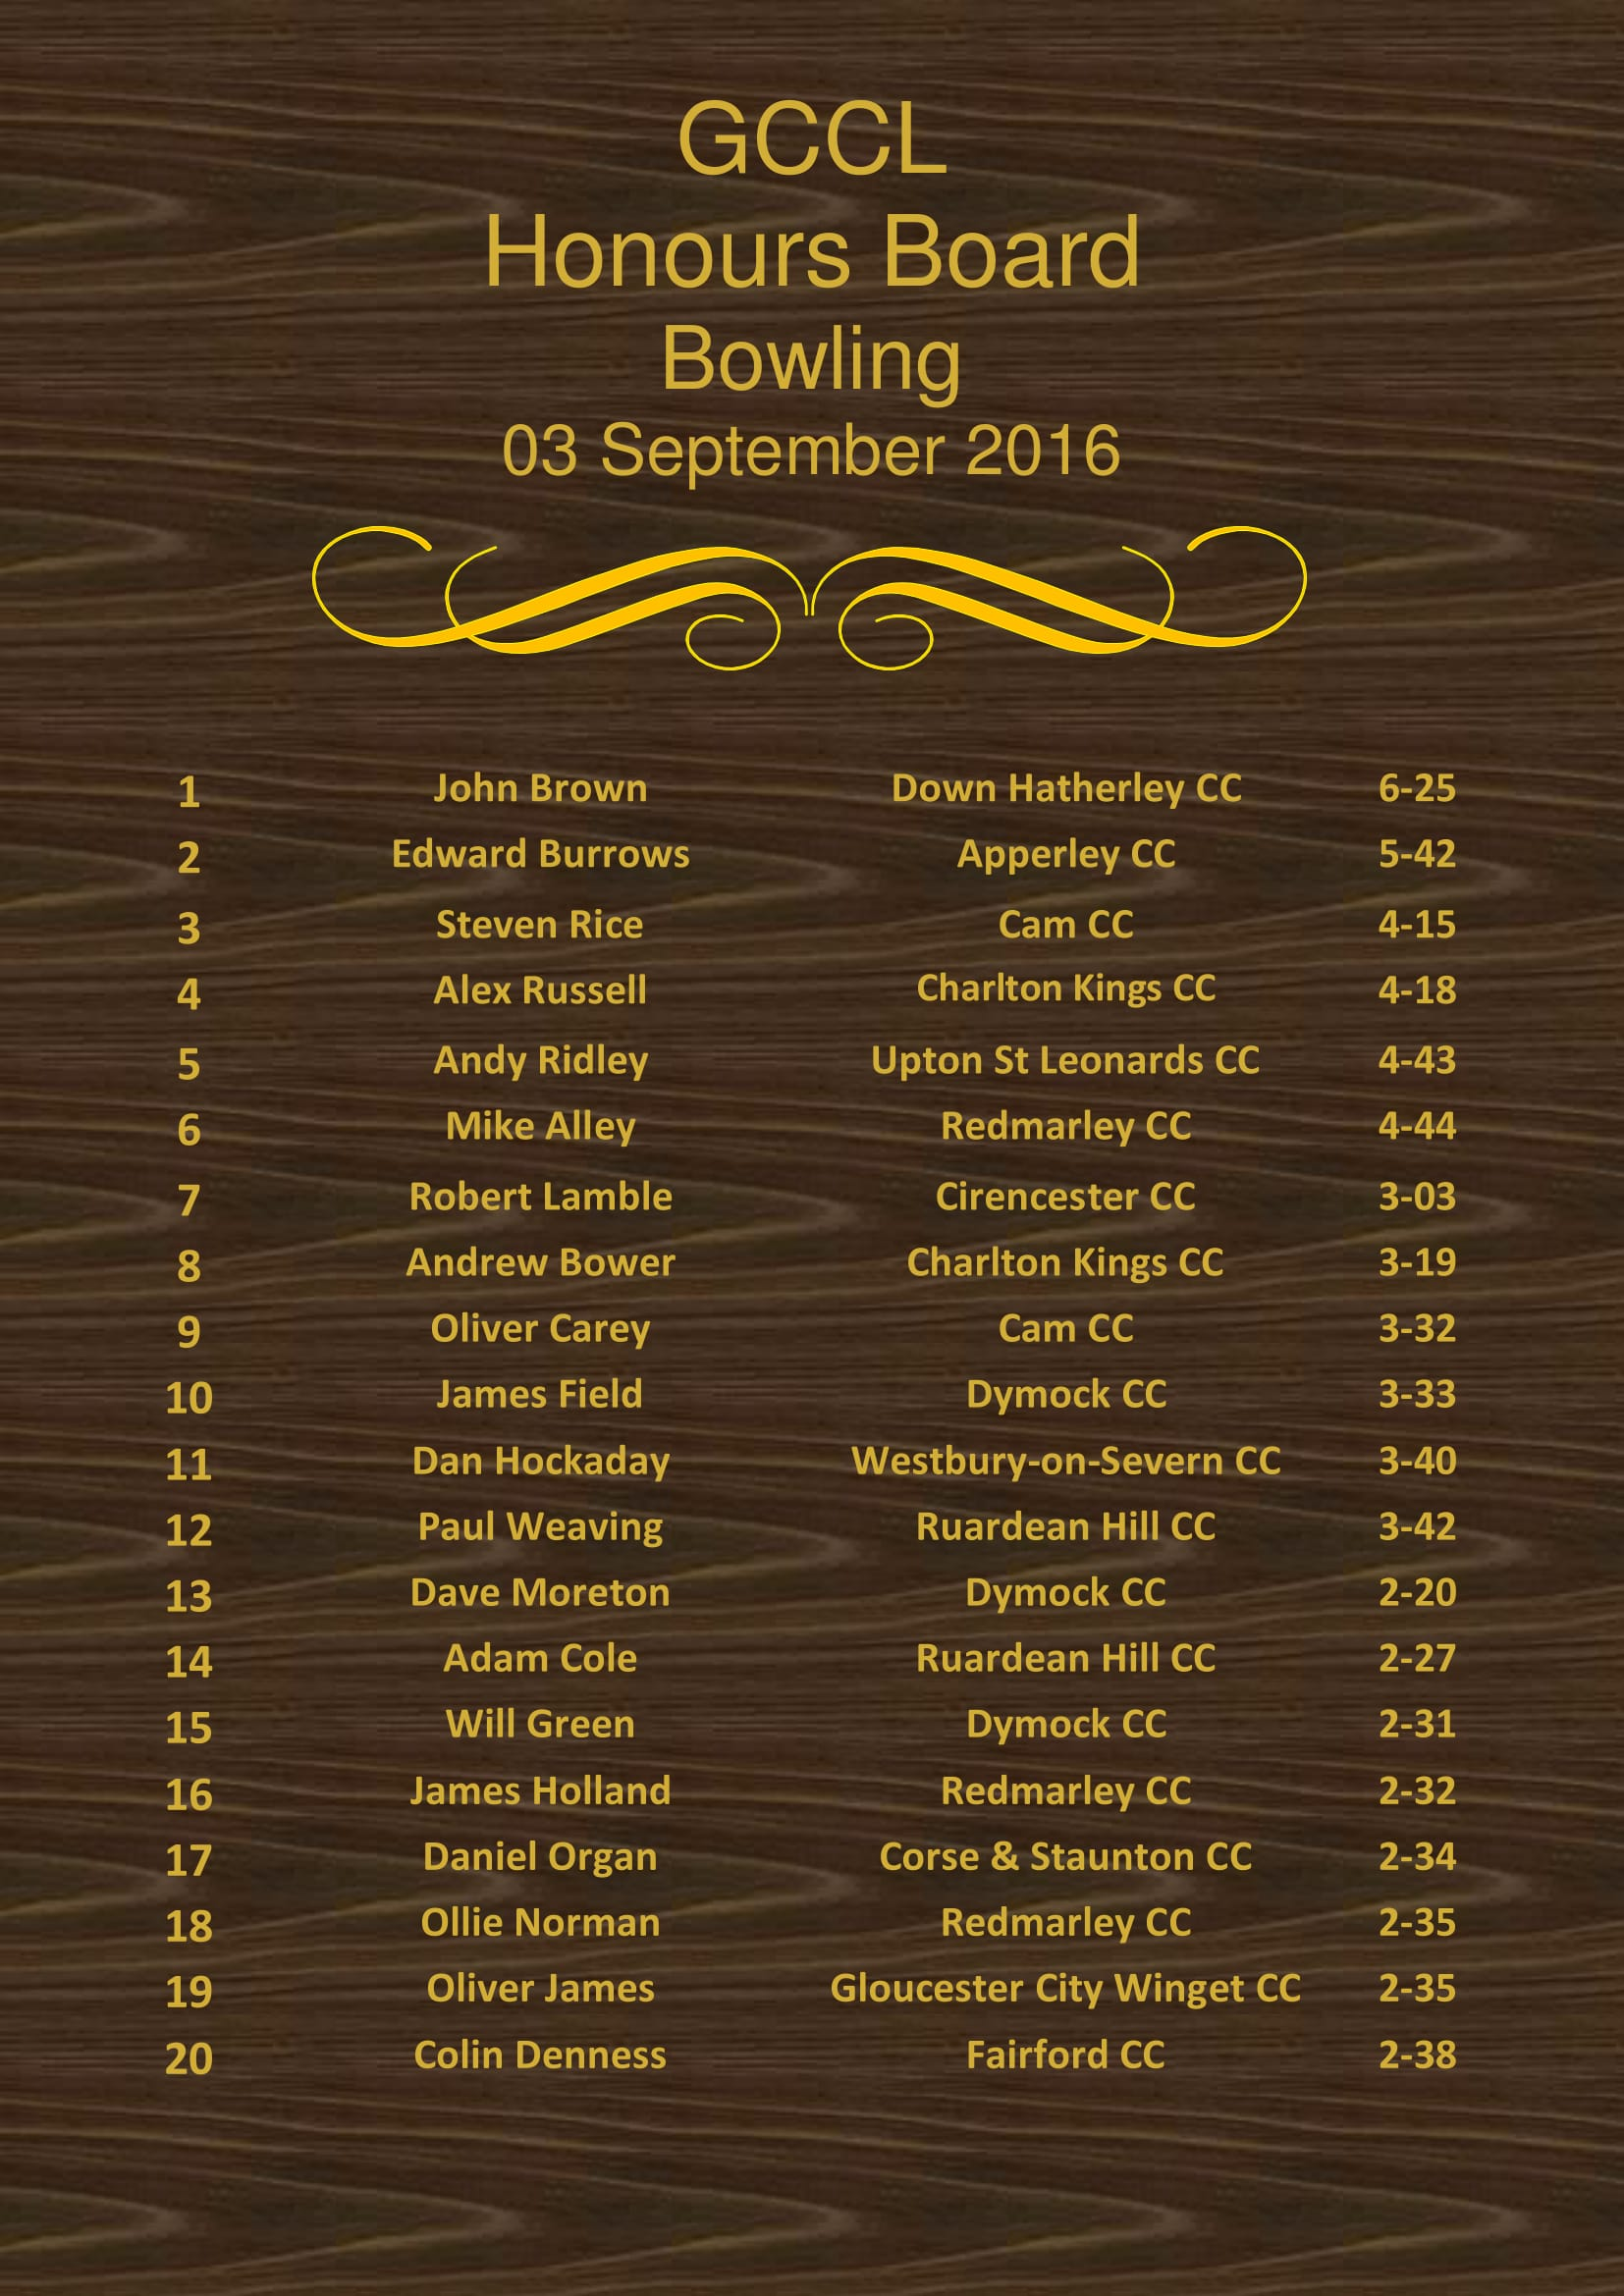 Bowling Honours Boards